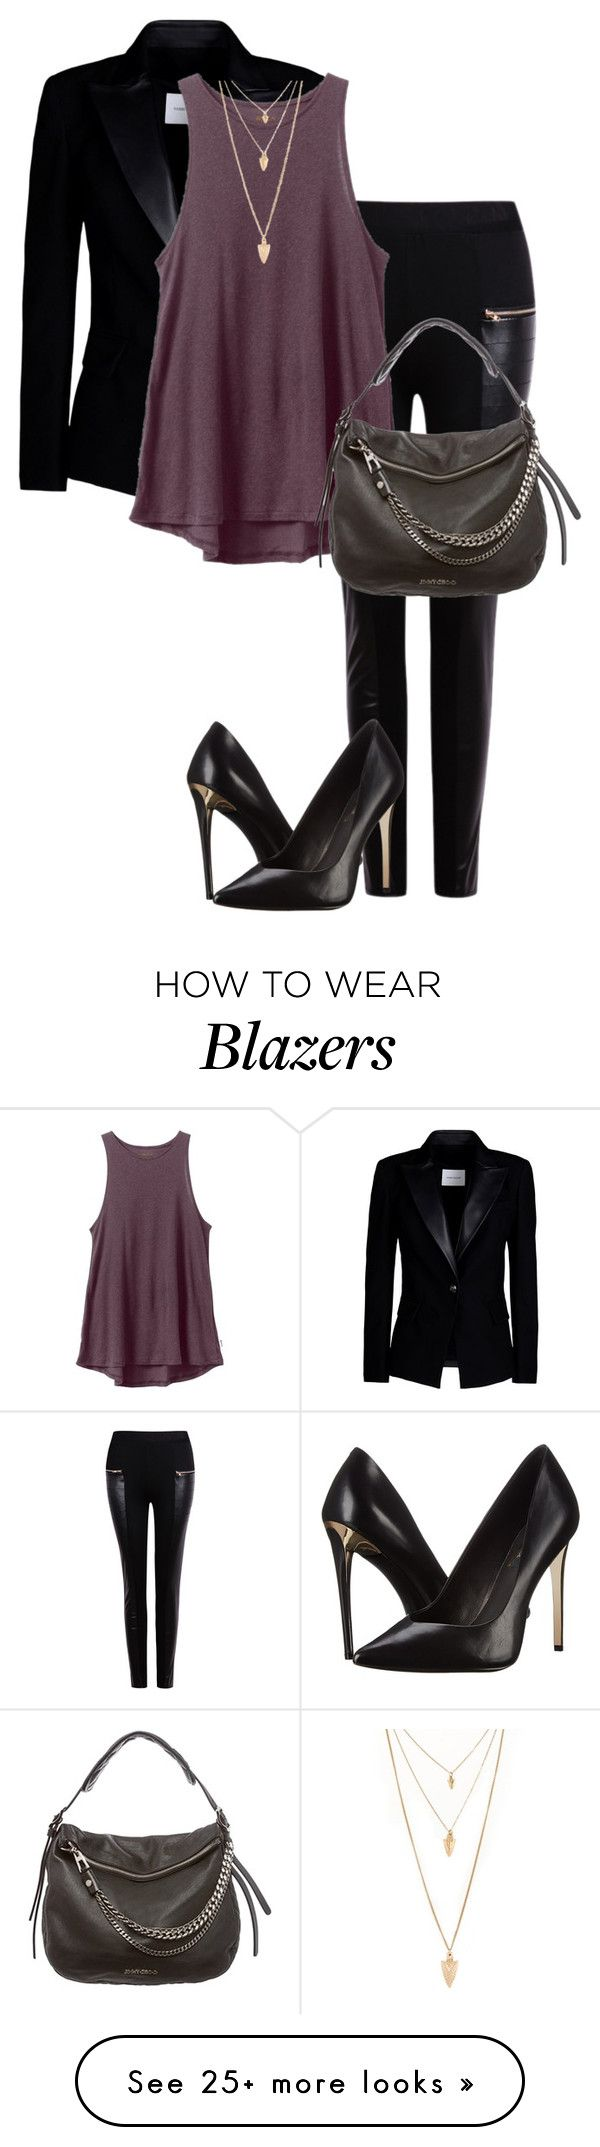 """Untitled #584"" by indirareeves on Polyvore featuring Pierre Balmain, RVCA, Rachel Zoe, Jimmy Choo, Forever 21, women's clothing, women, female, woman and misses"